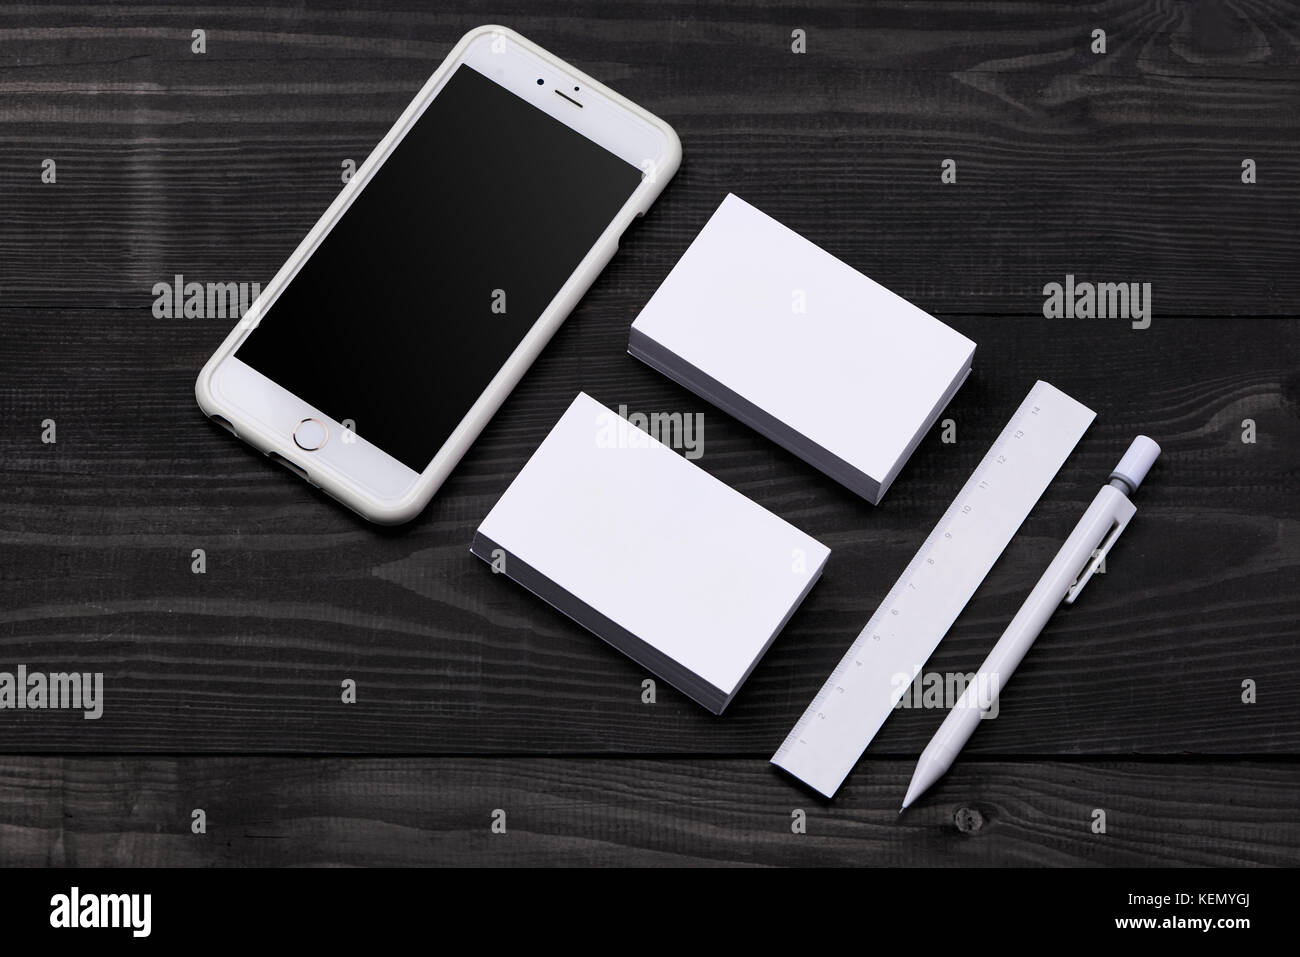 Mockup of cellphone with blank screen and business cards stock photo mockup of cellphone with blank screen and business cards colourmoves